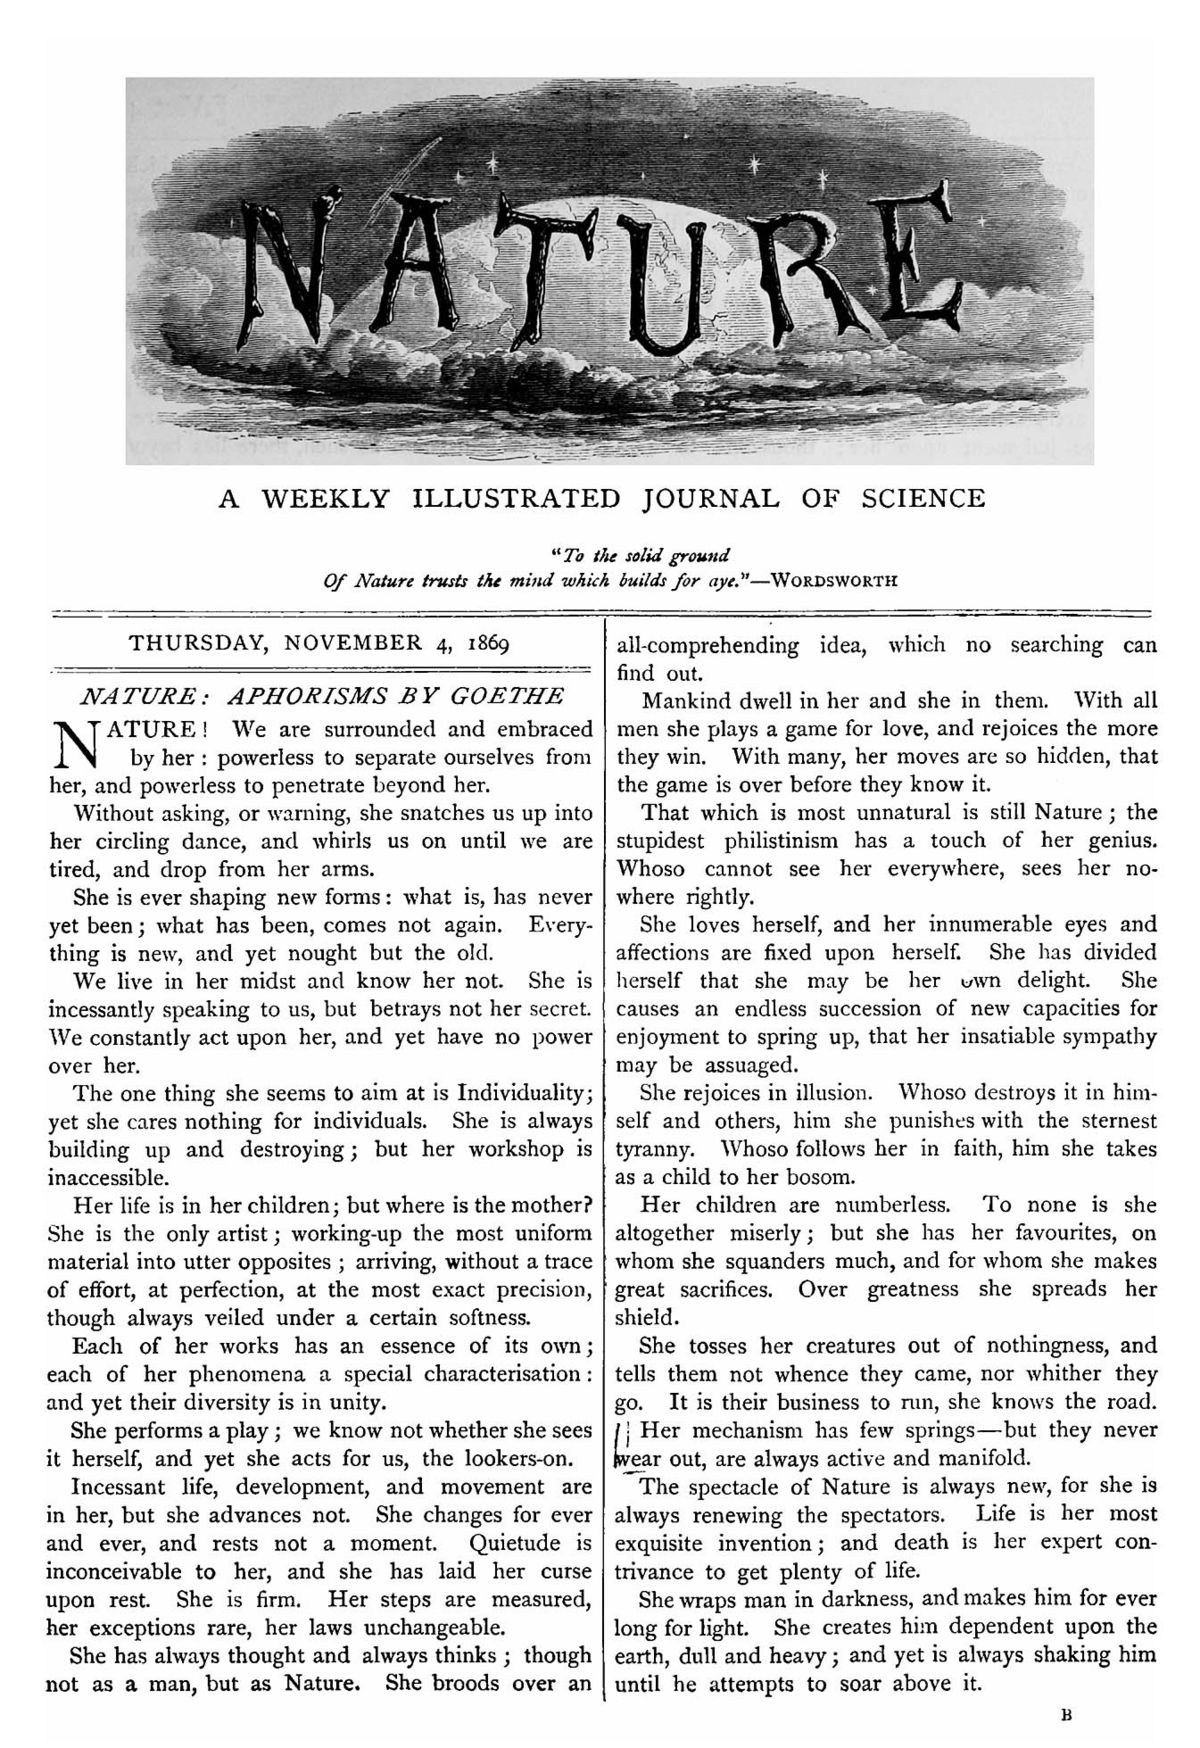 013 1200px Nature Cover2c November 42c 1869 Research Paper Best Journals To Publish Stunning Papers In Computer Science List Of Full